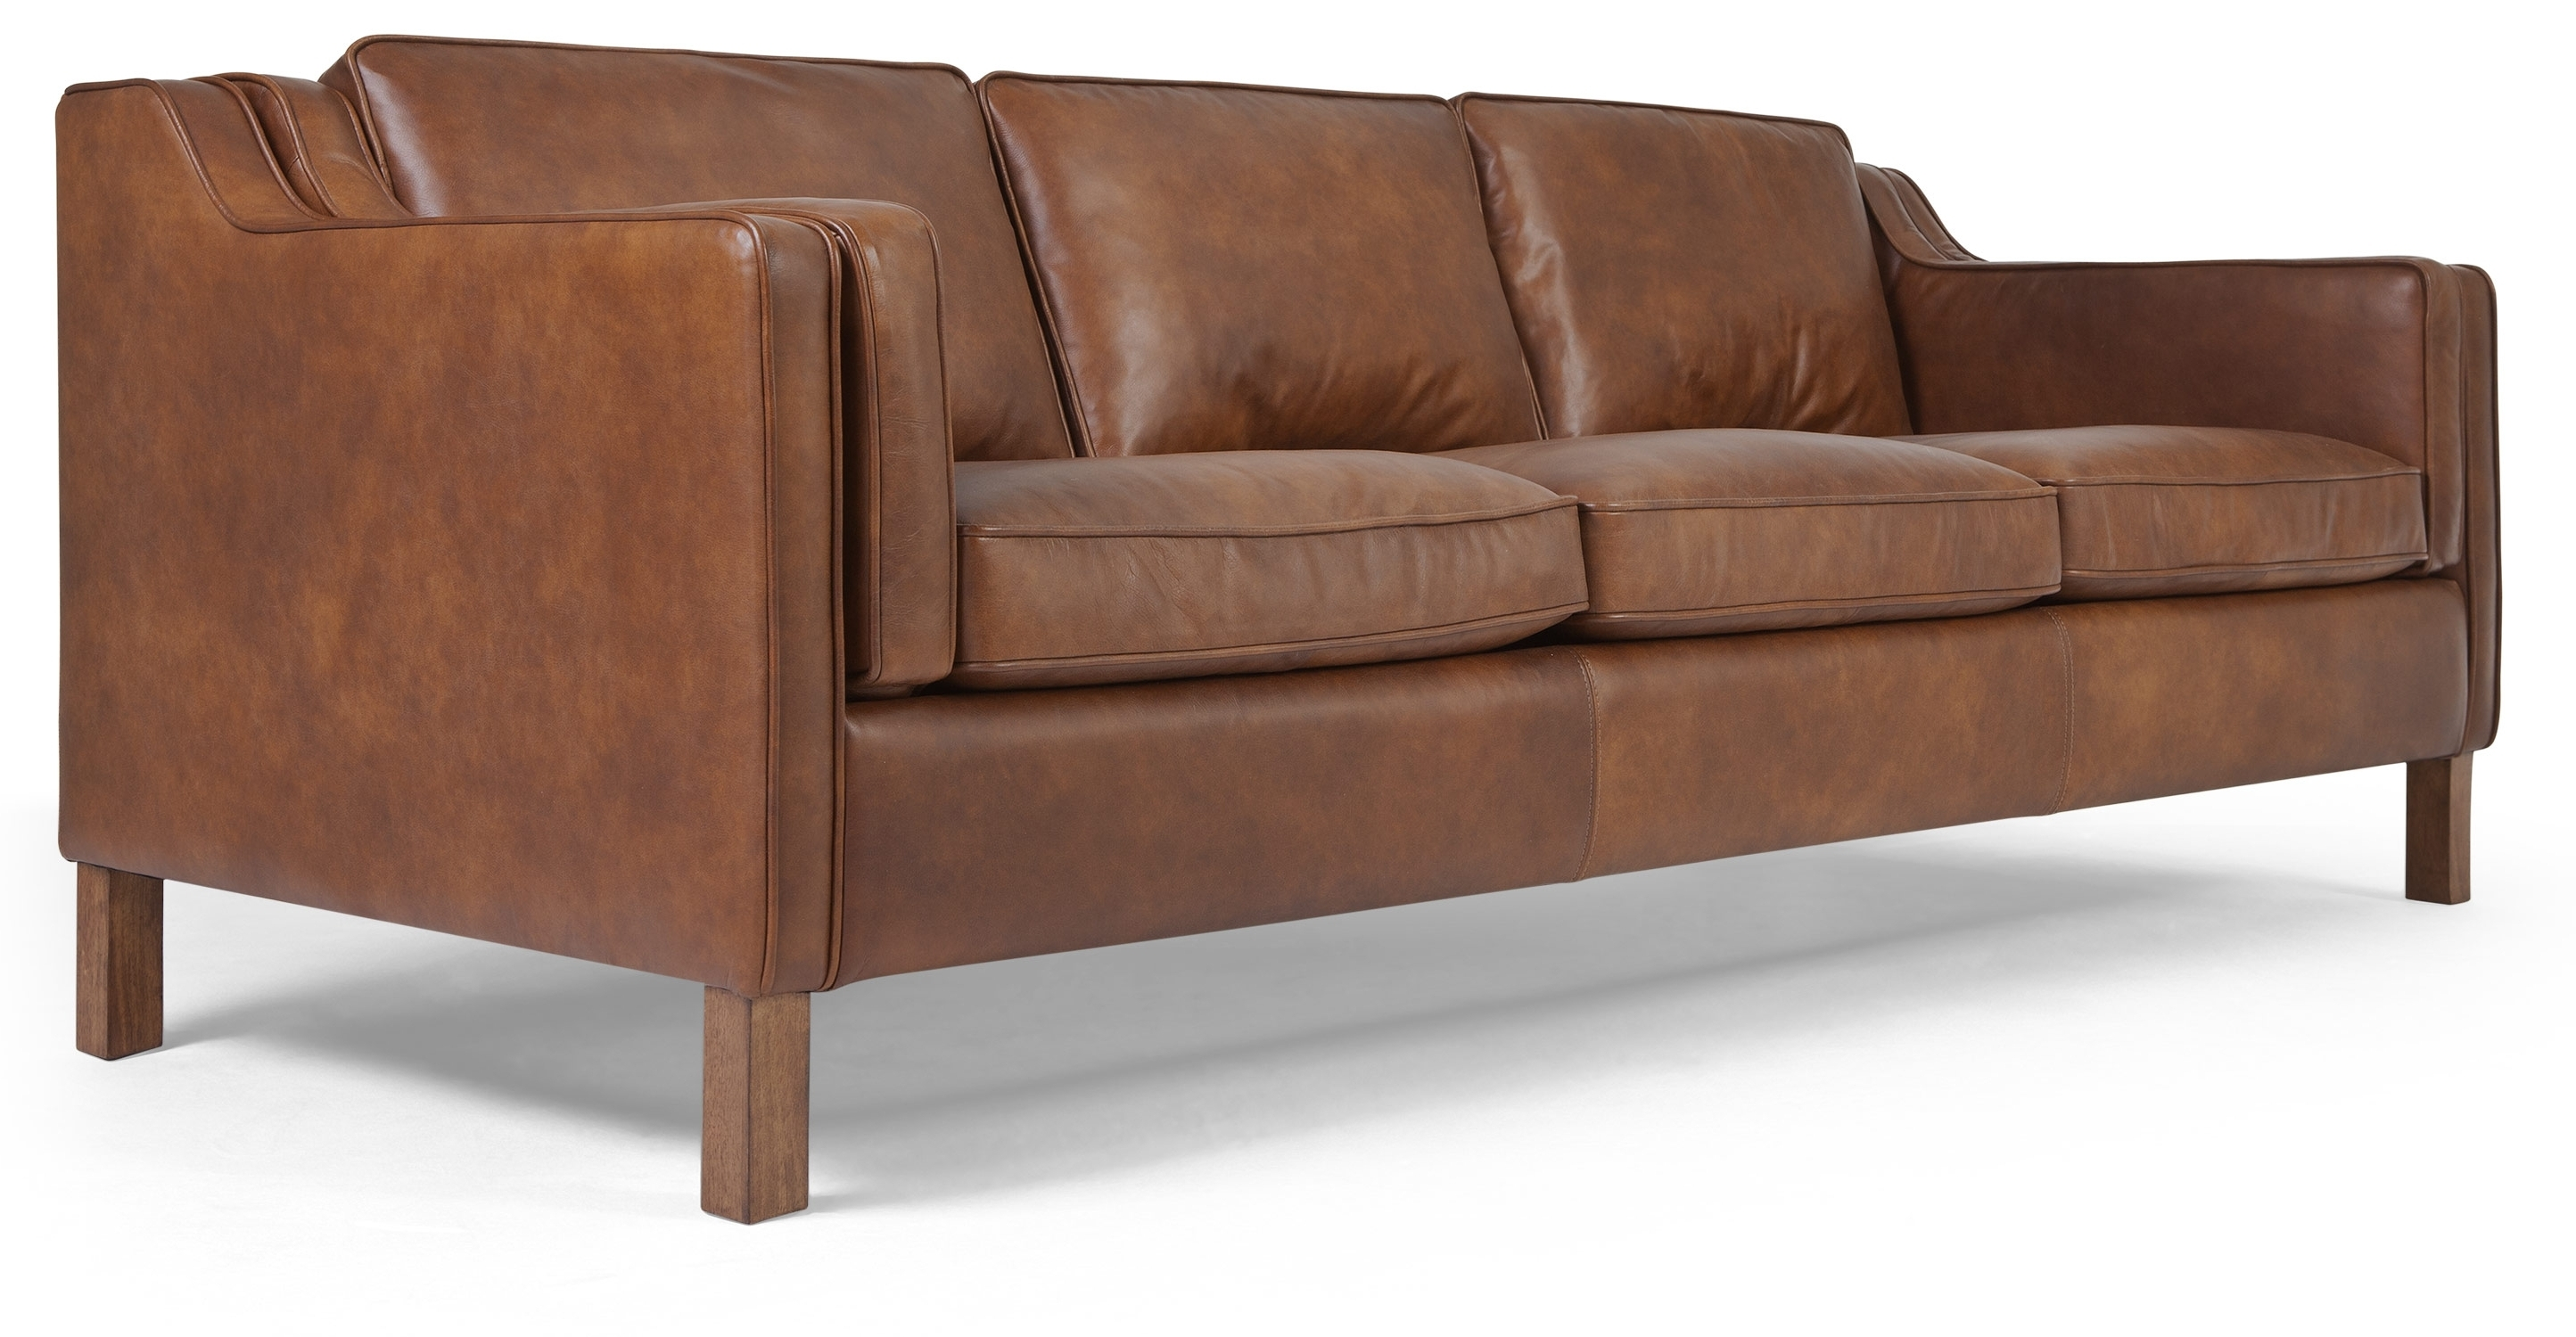 Light Tan Leather Sofas Inside 2018 Furniture : Great Light Brown Leather Sofa 40 For Your Living Room (View 12 of 20)